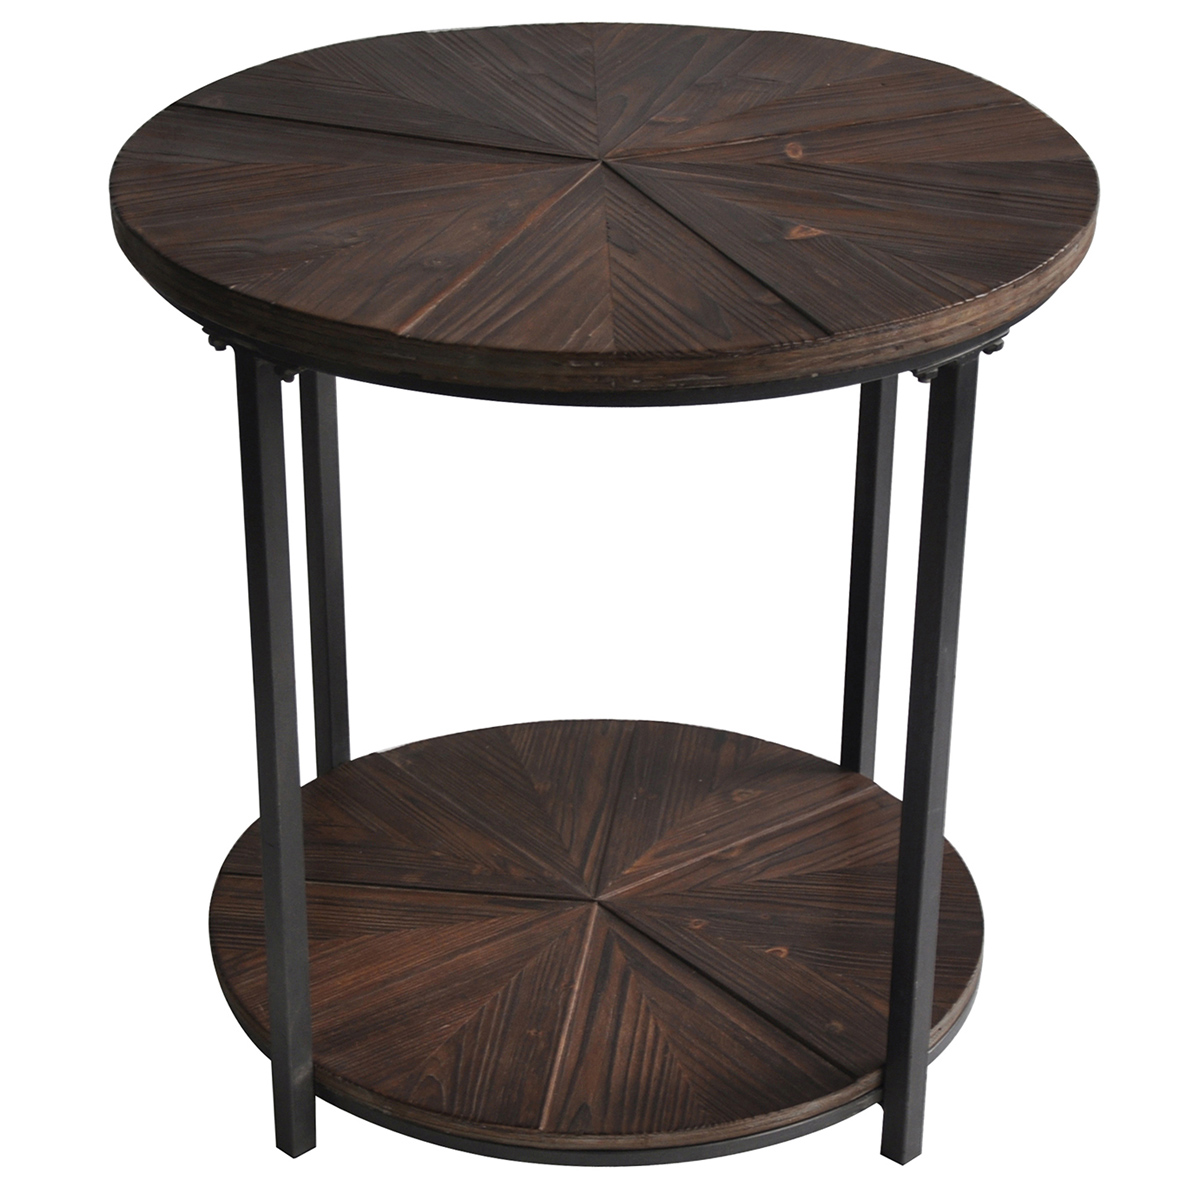 jackson round metal and rustic wood end table pedestal lamp small accent tables under sofa pottery barn desk outdoor farmhouse ashley home furniture clearance center shoe kitchen